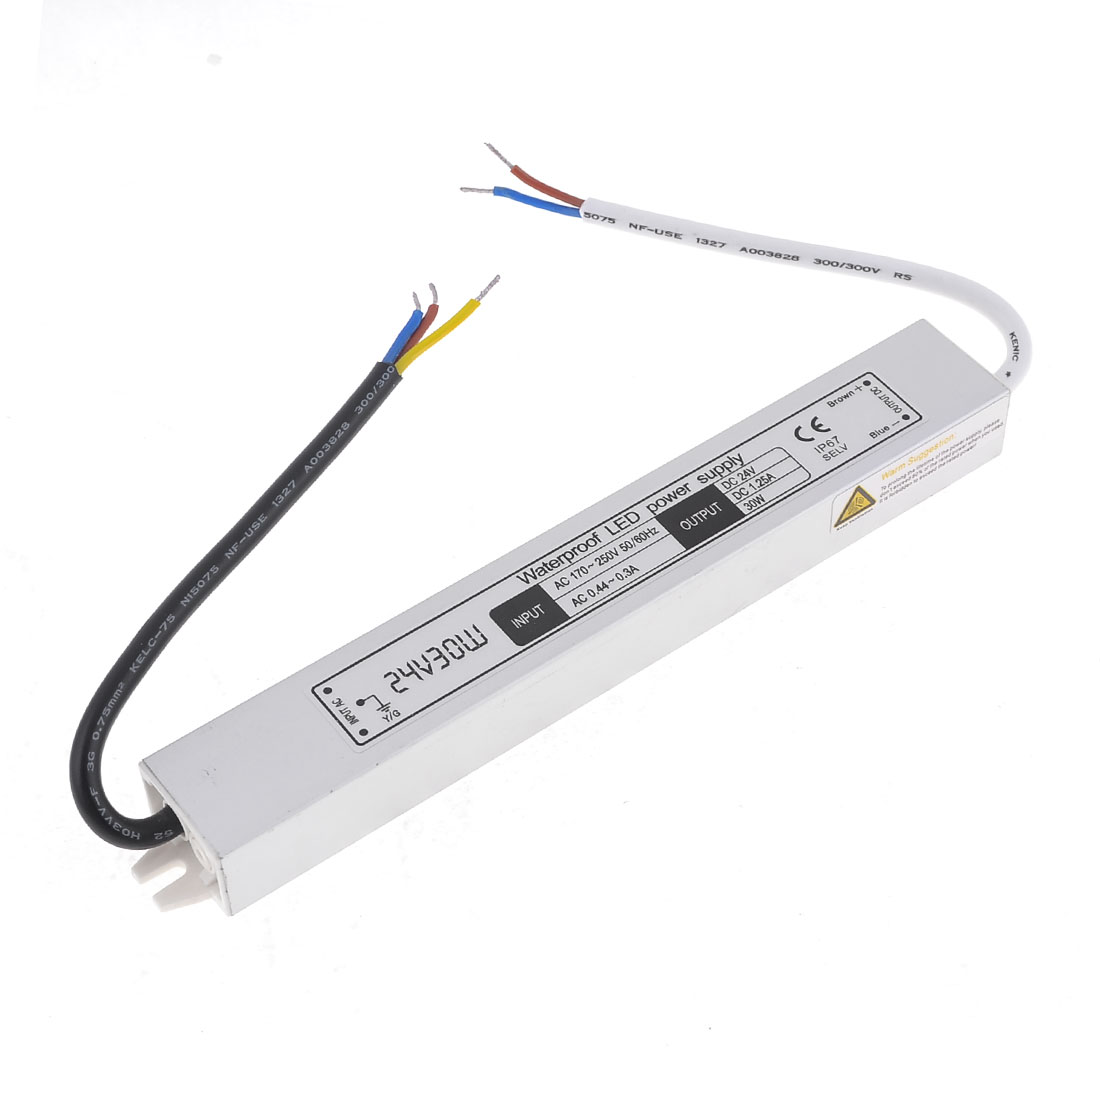 AC170-250V DC24V 1.25A 30W Waterproof Power Supply for LED Lighting